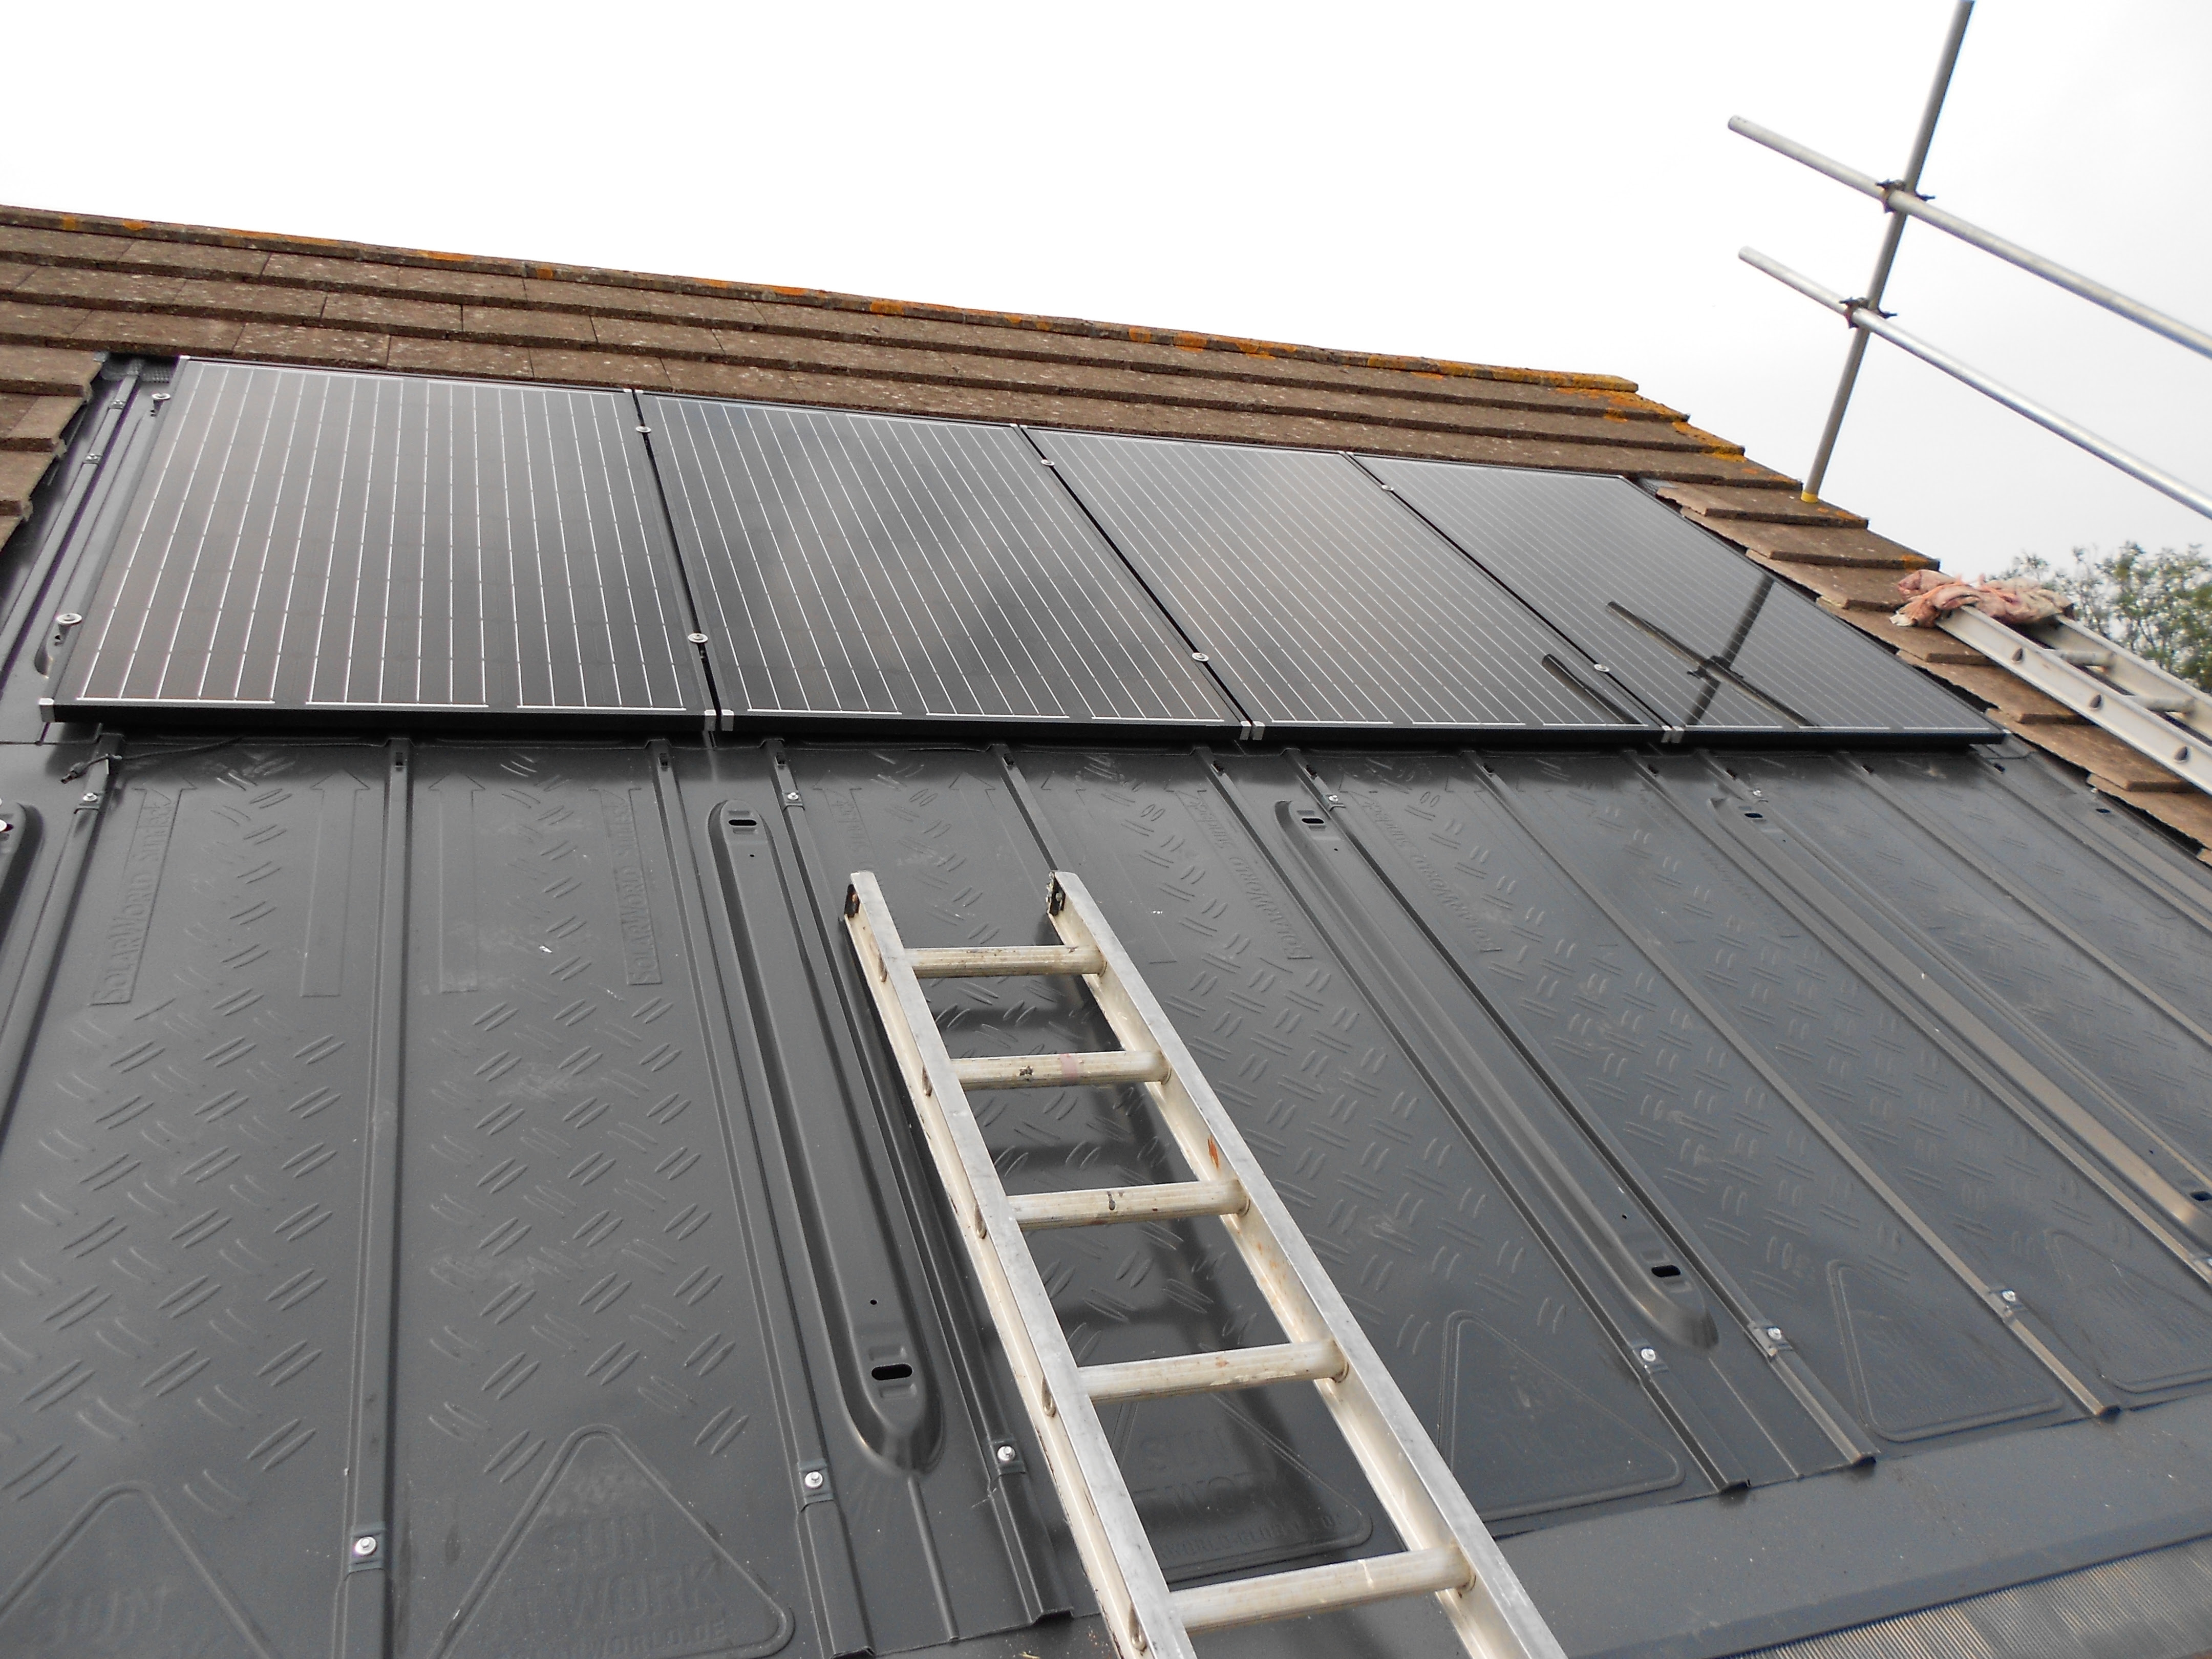 Removing solar panels from roof